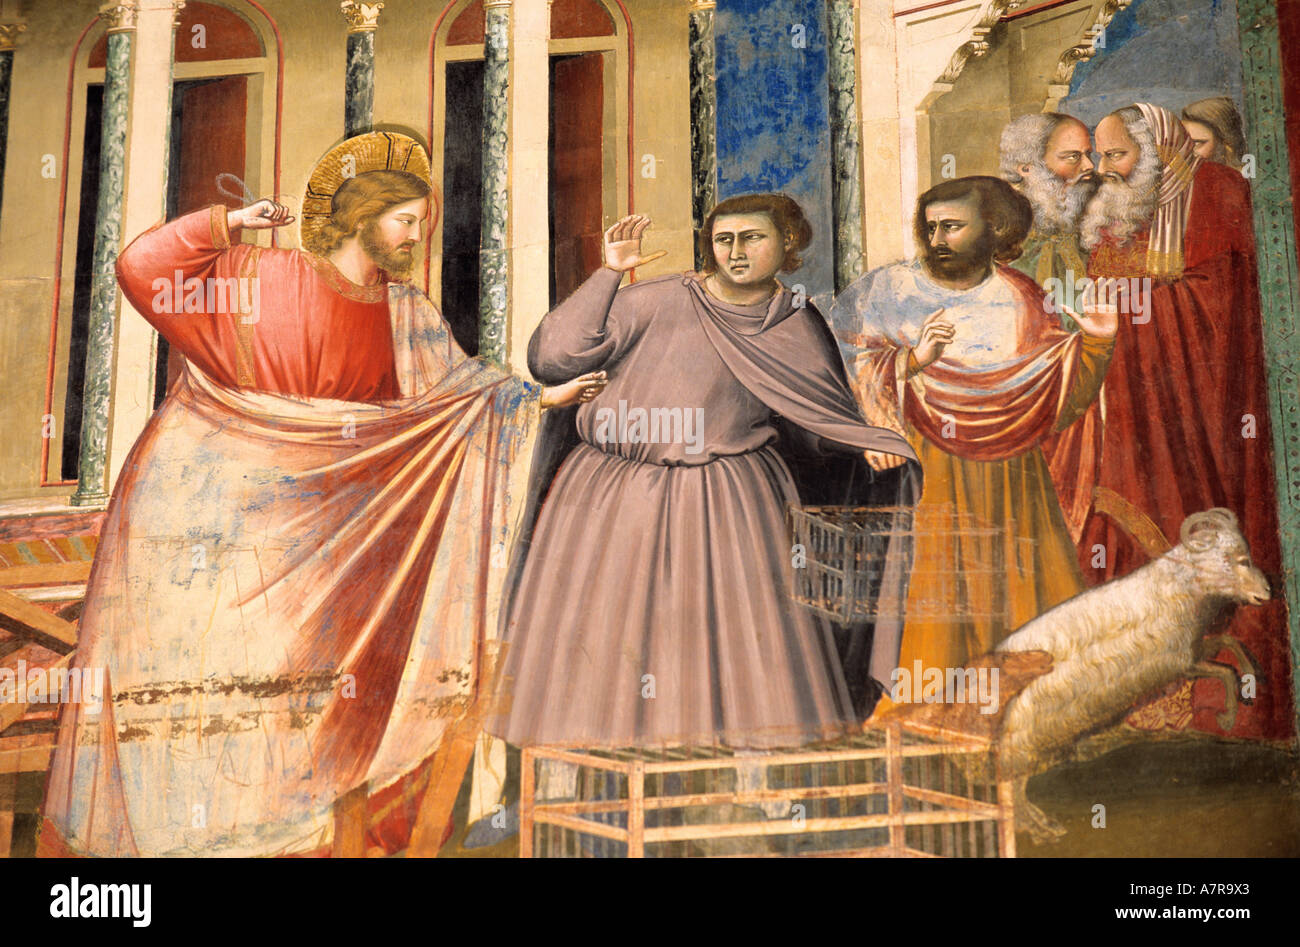 "Italy, Venetia, Padua, ""Scrovegni chapel, frescoes by Giotto (Jesus chasing away the merchants with his fist raised) Stock Photo"